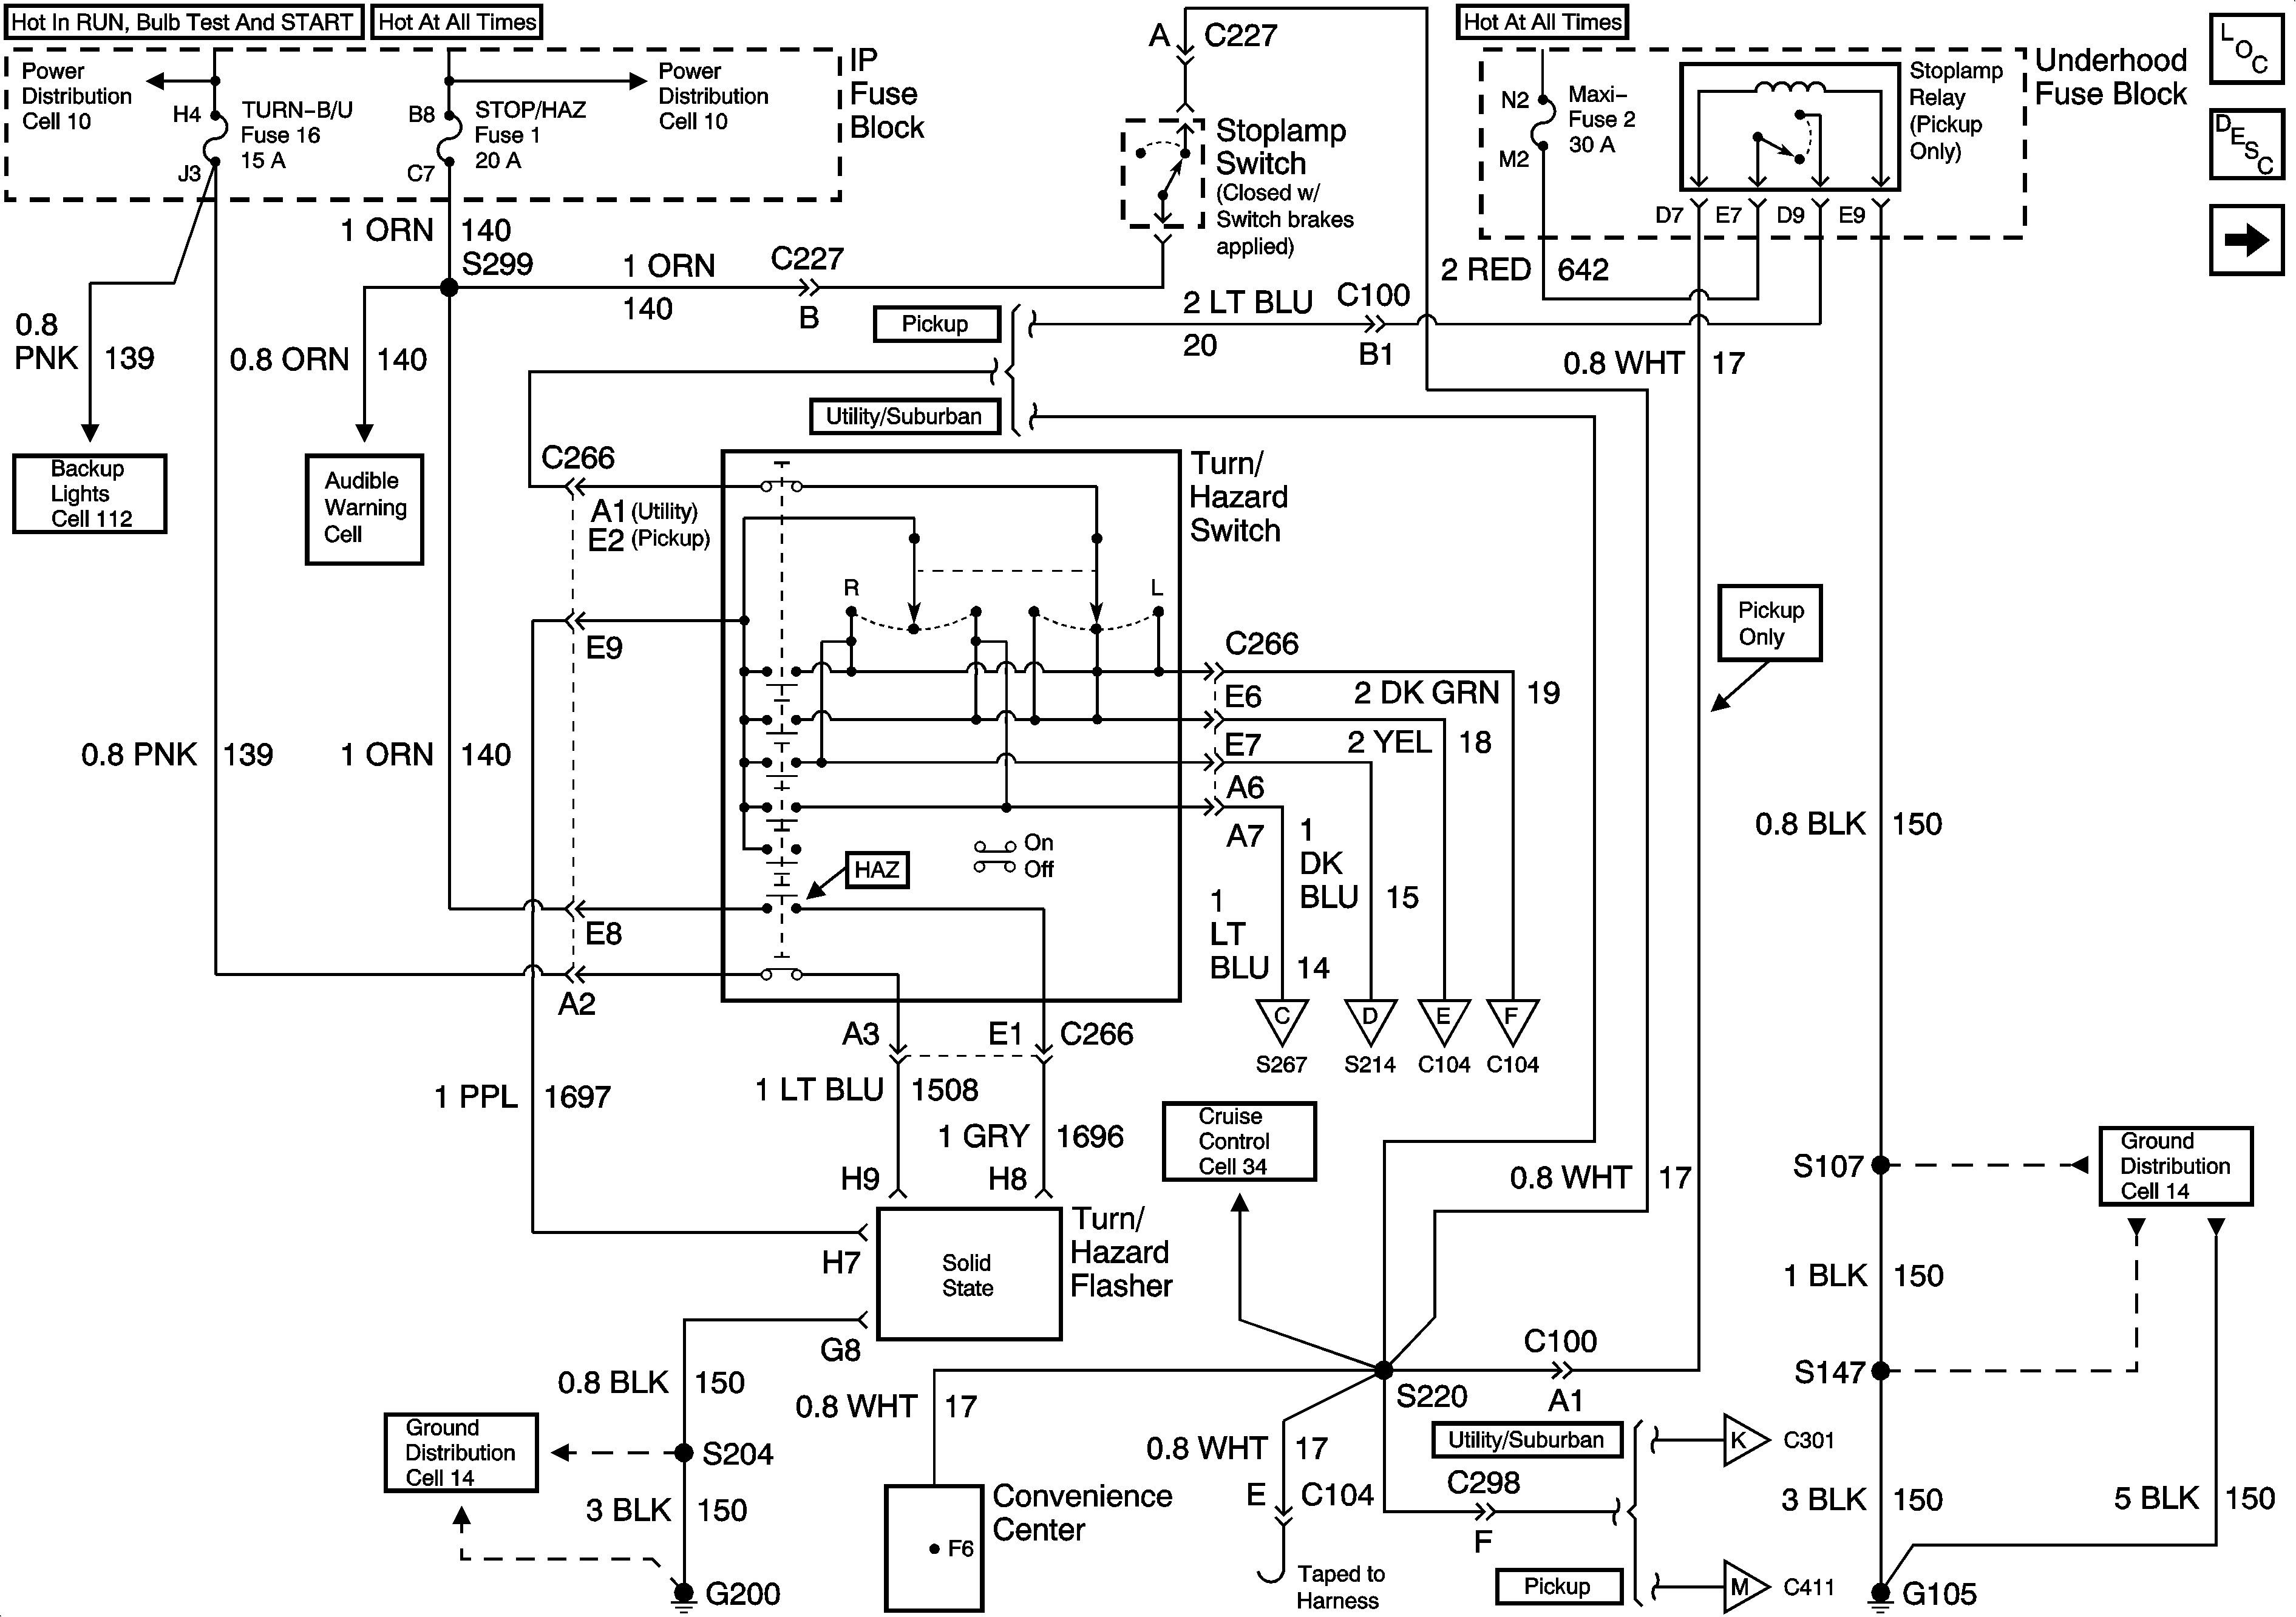 S10 Transmission Wiring Harness Diagram 4l60e transmission ... on 4t65e wiring diagram, 4l60e transmission, 5r55s wiring diagram, 6l90e wiring diagram, 4t40e wiring diagram, 5r110 wiring diagram, e4od wiring diagram, a604 wiring diagram, aode wiring diagram, 700r4 wiring diagram, harness wiring diagram, nv4500 wiring diagram, neutral safety switch wiring diagram, cd4e wiring diagram, 4x4 wiring diagram, th350c wiring diagram, 4l80e wiring diagram, turbo 400 wiring diagram, transmission wiring diagram, th350 wiring diagram,